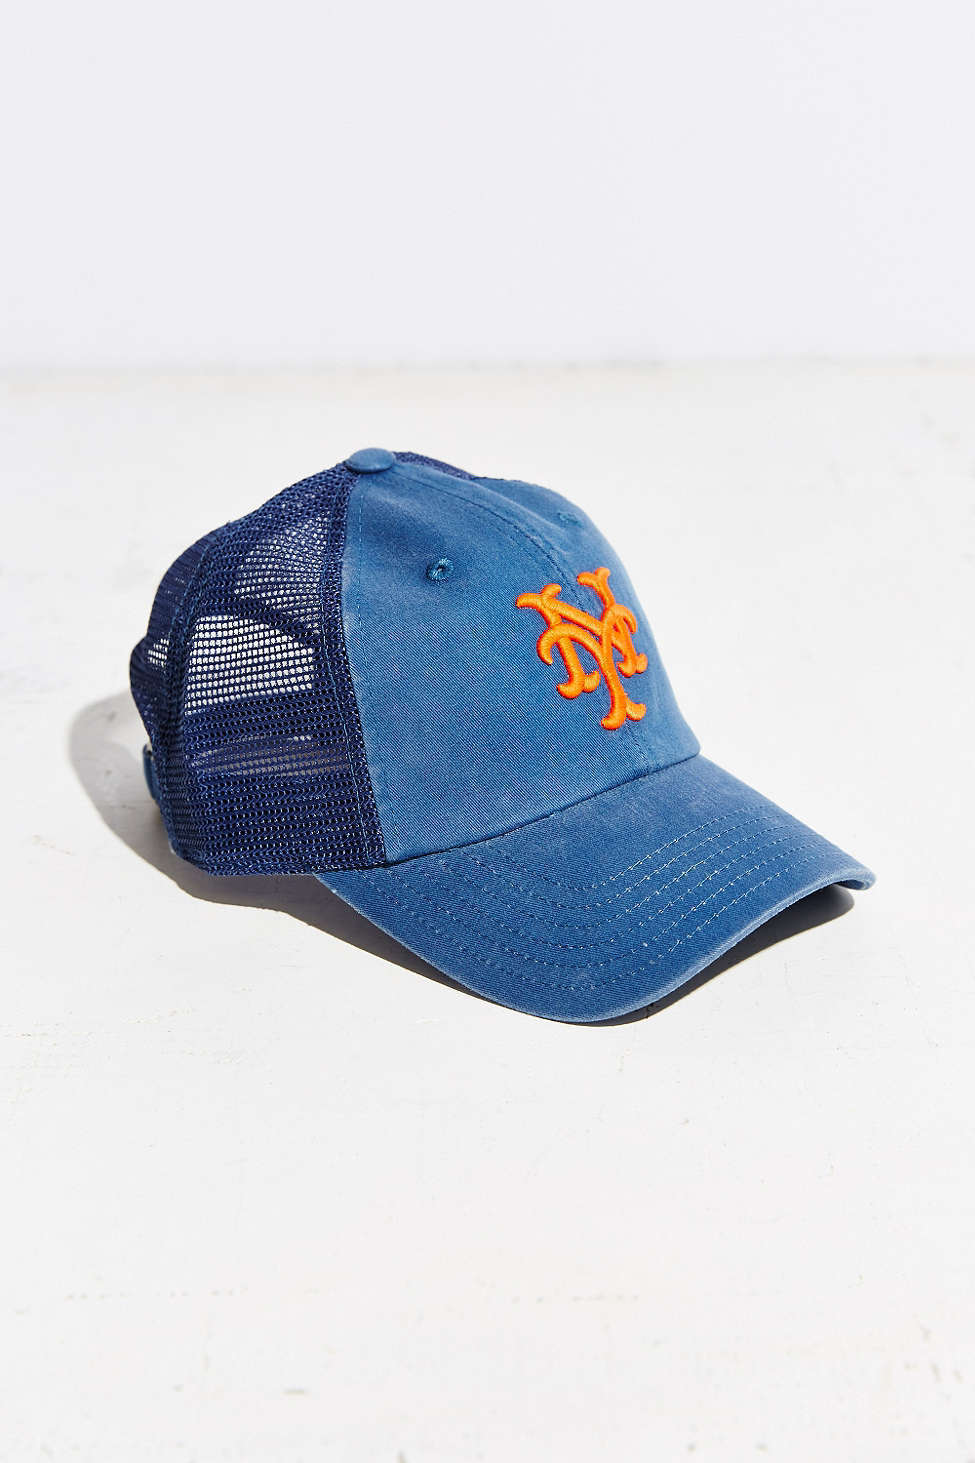 quot outfitters quot mlb baseball cap 3 types buyma